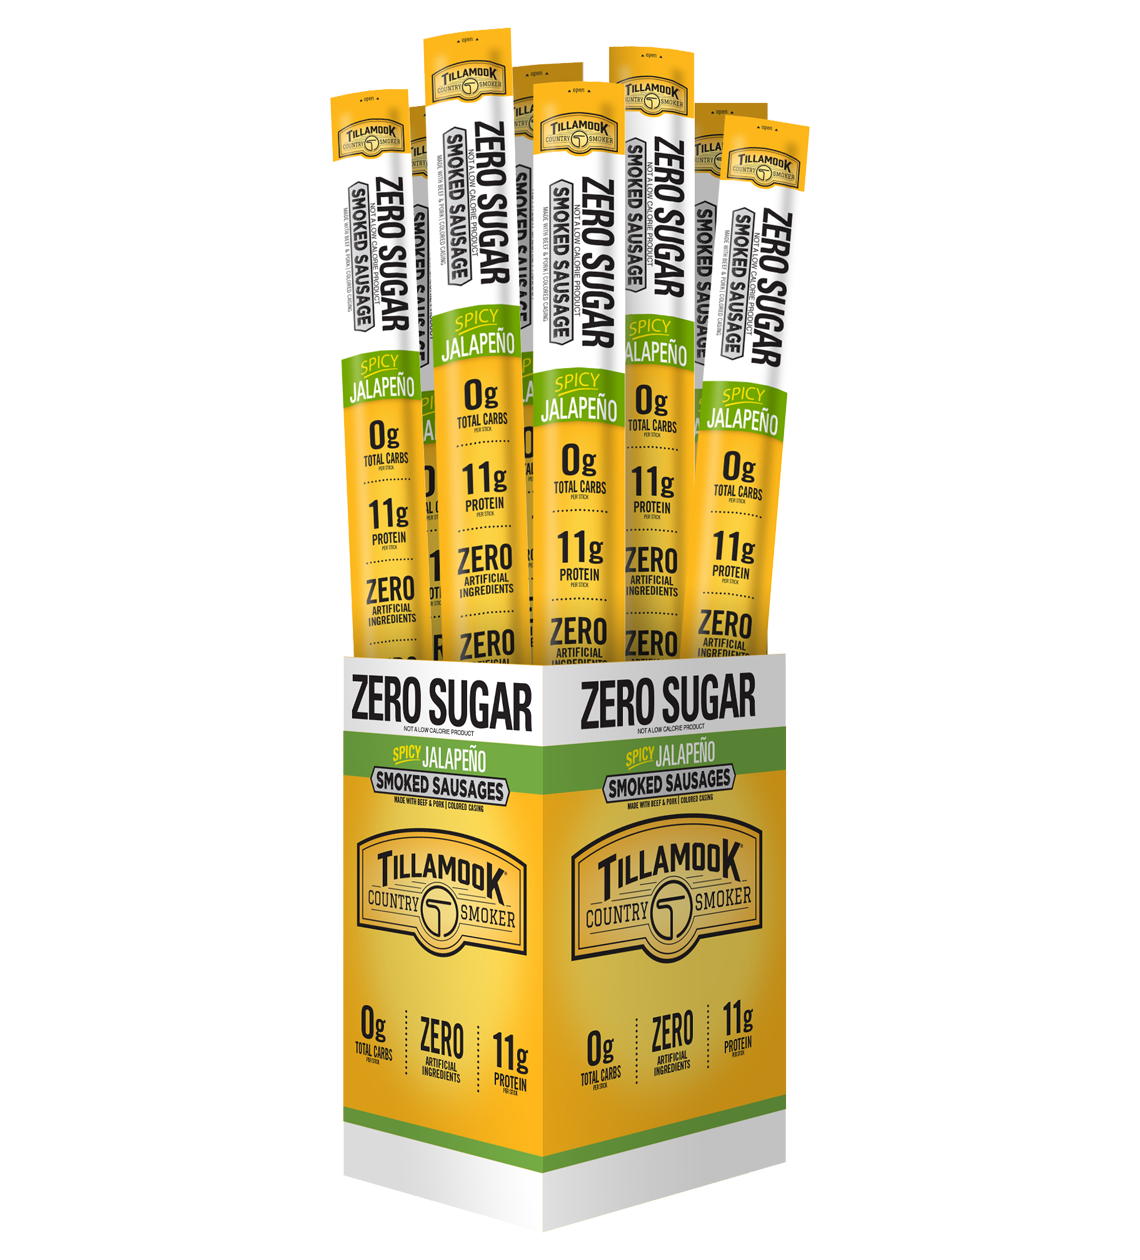 #126 Zero Sugar Spicy Jalapeno Meat Sticks